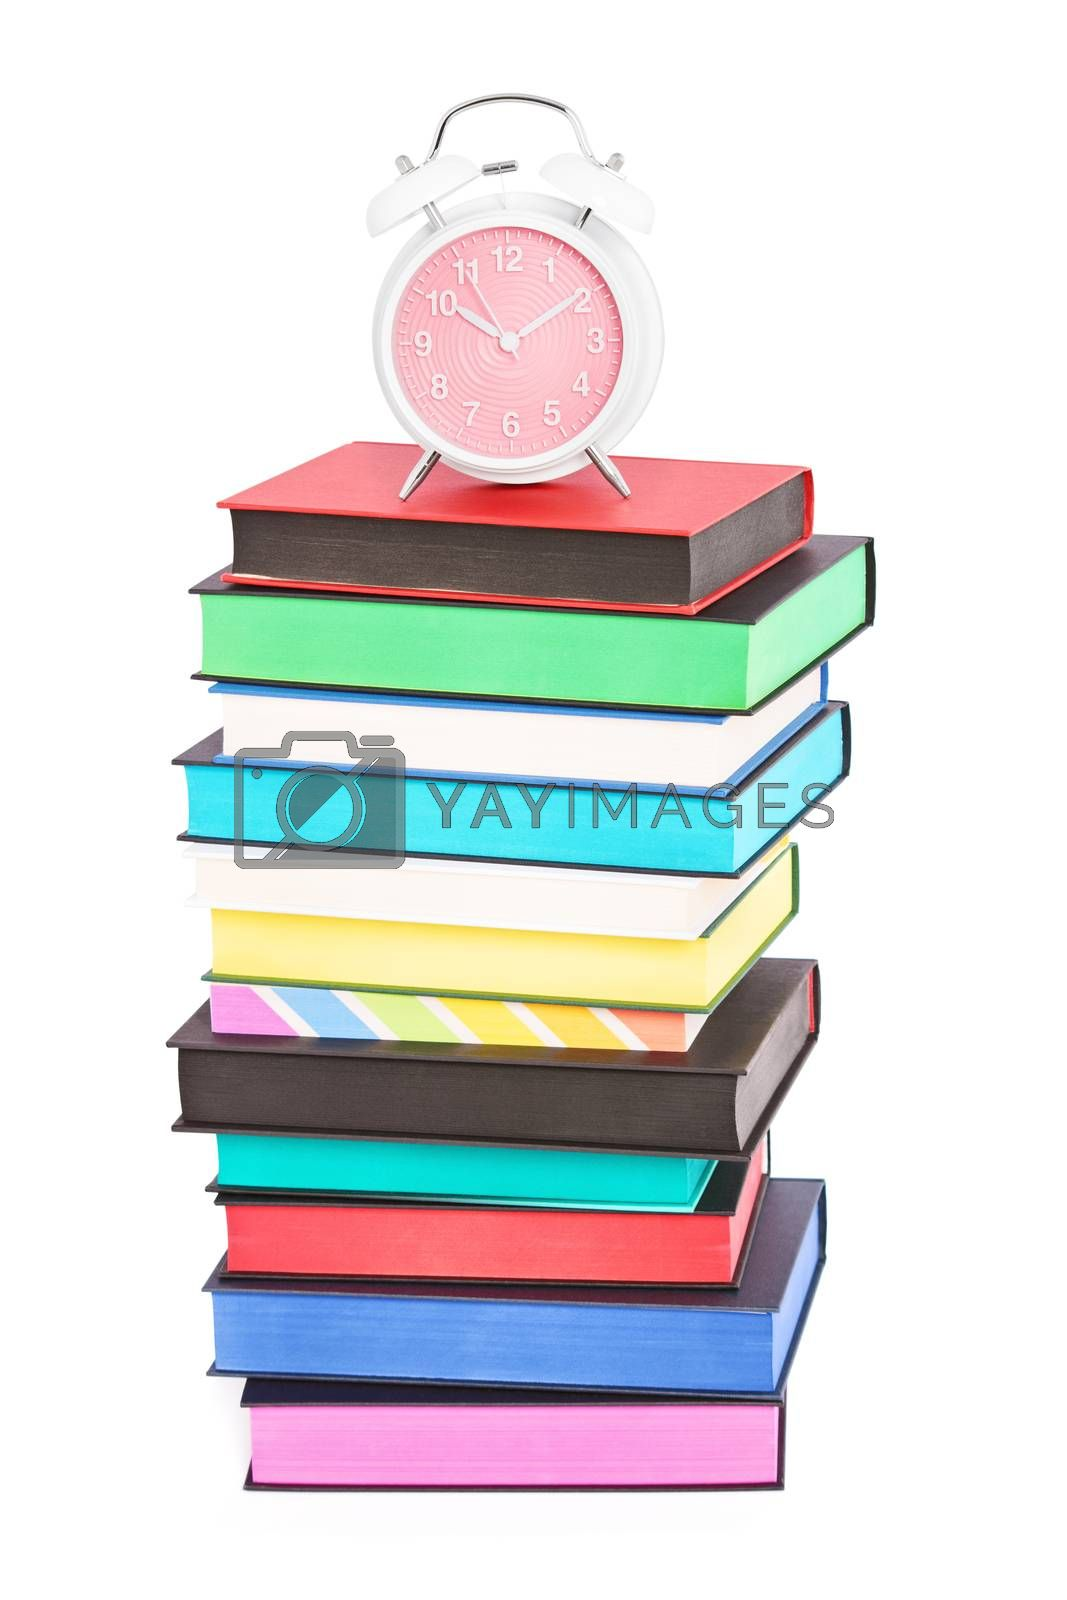 An alarm clock on top of stack of colorful books with different sprayed edges, isolated on white background. Education and time concept.